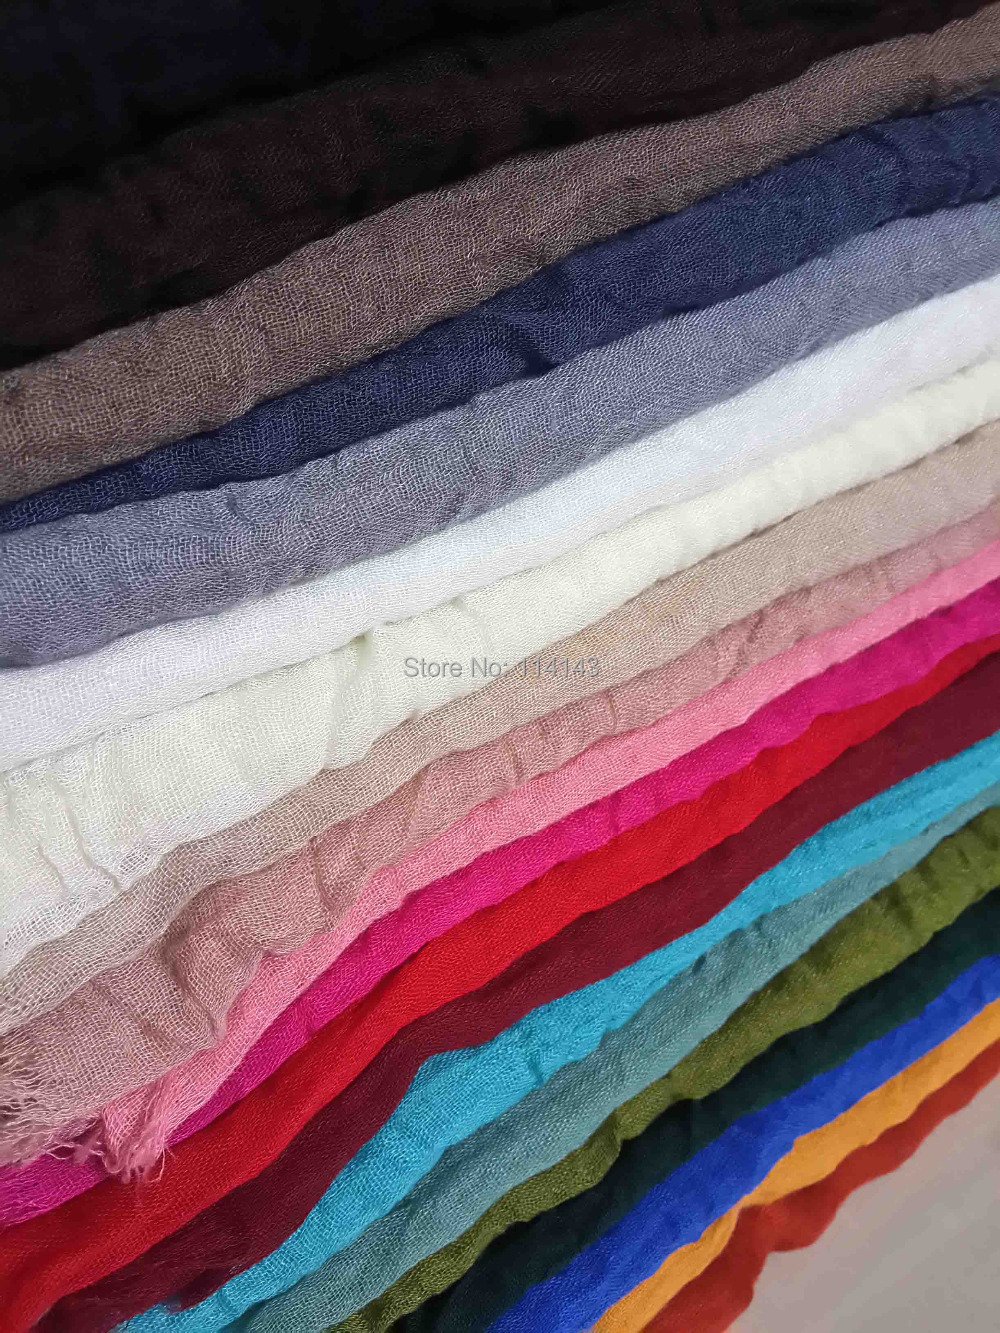 10pcs/lot Soft Oversize Frayed Edges Plain Solid Color Cotton Scarf Hijab Shawl Wrap, Free Shipping(China (Mainland))